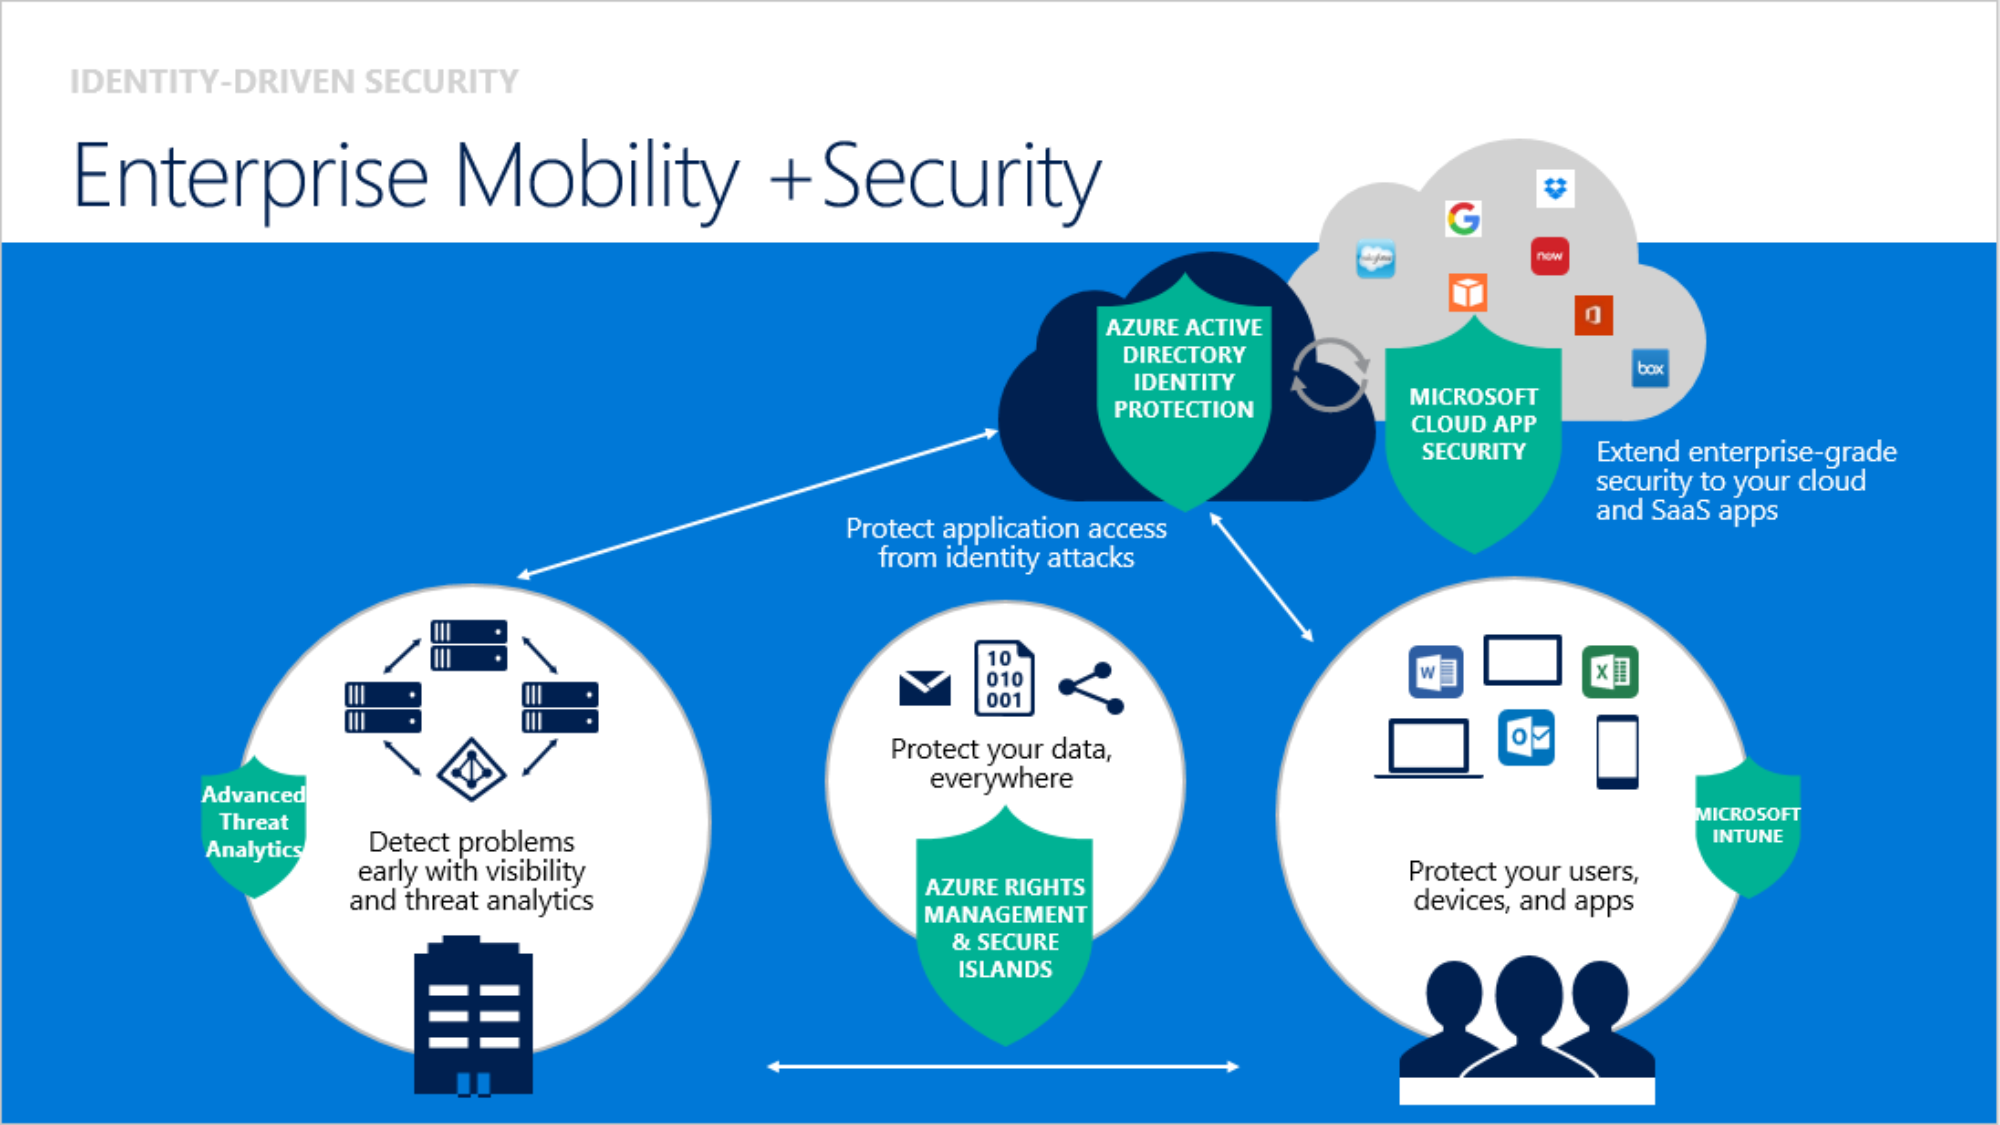 Technology Management Image: Enterprise Mobility + Security (EMS)